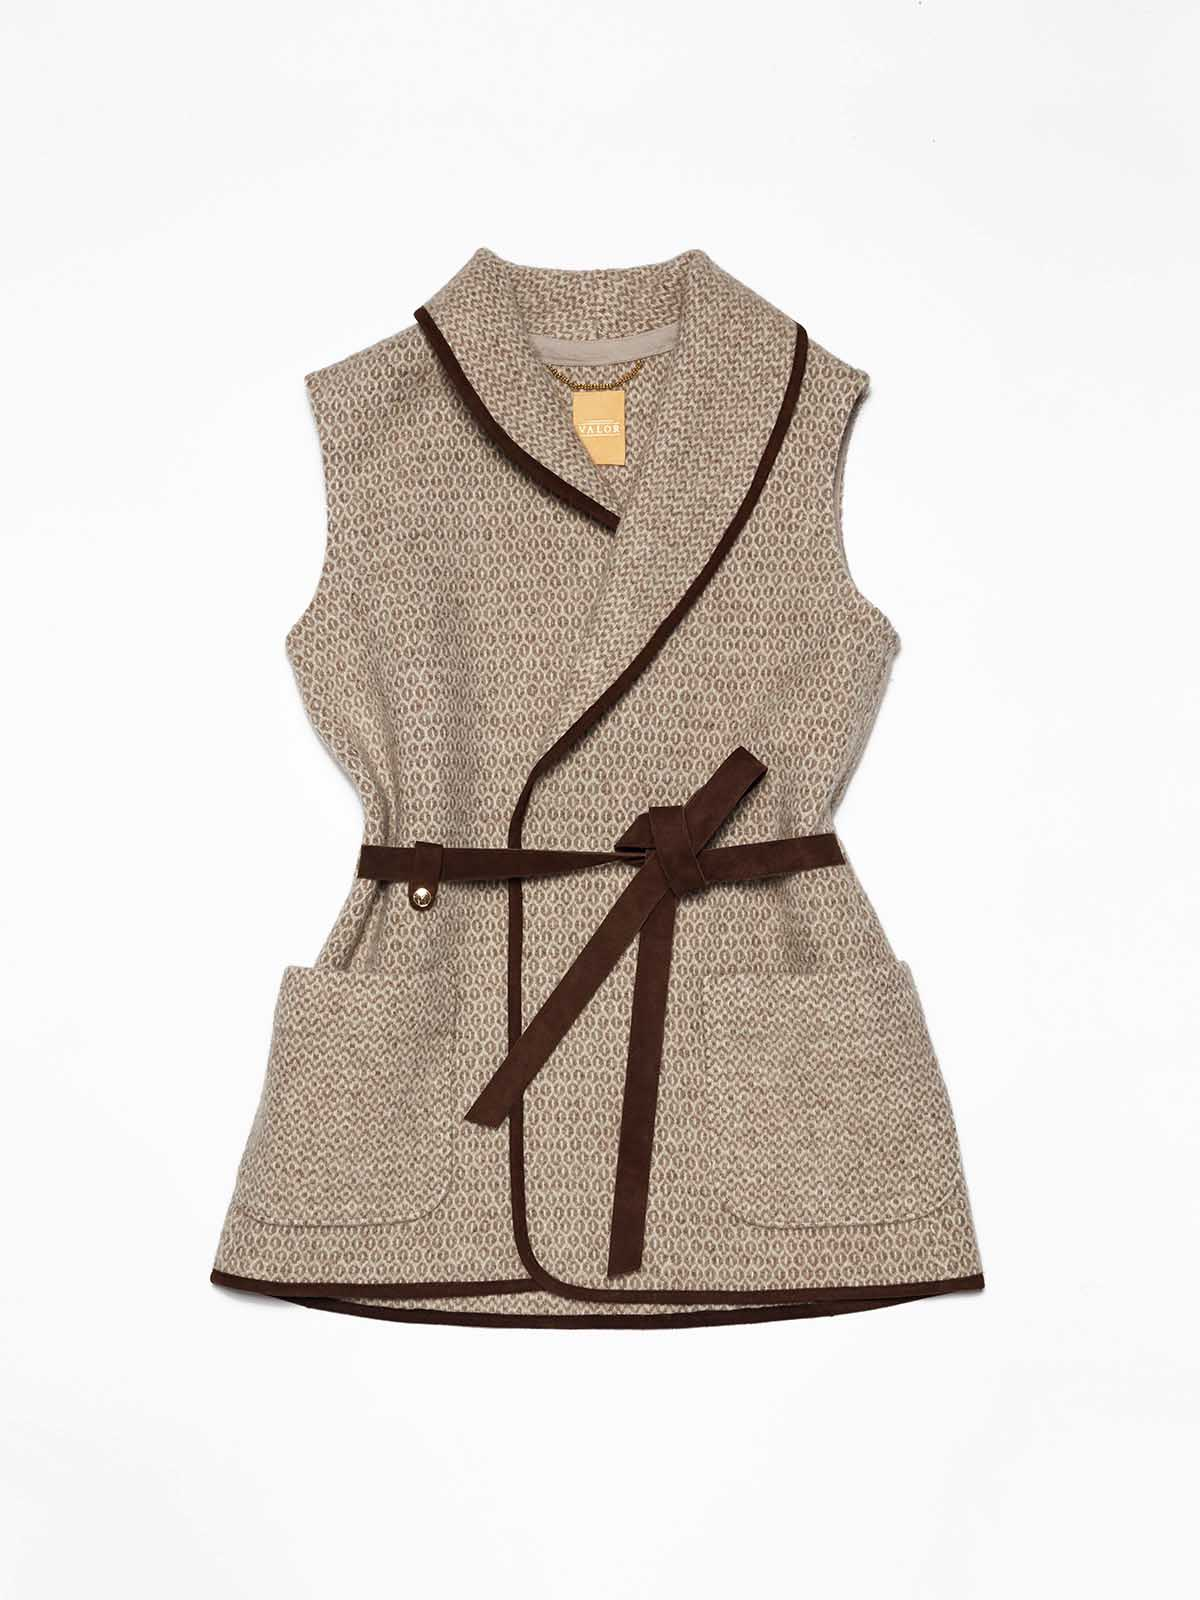 VALOR handwoven riding vest GLANA